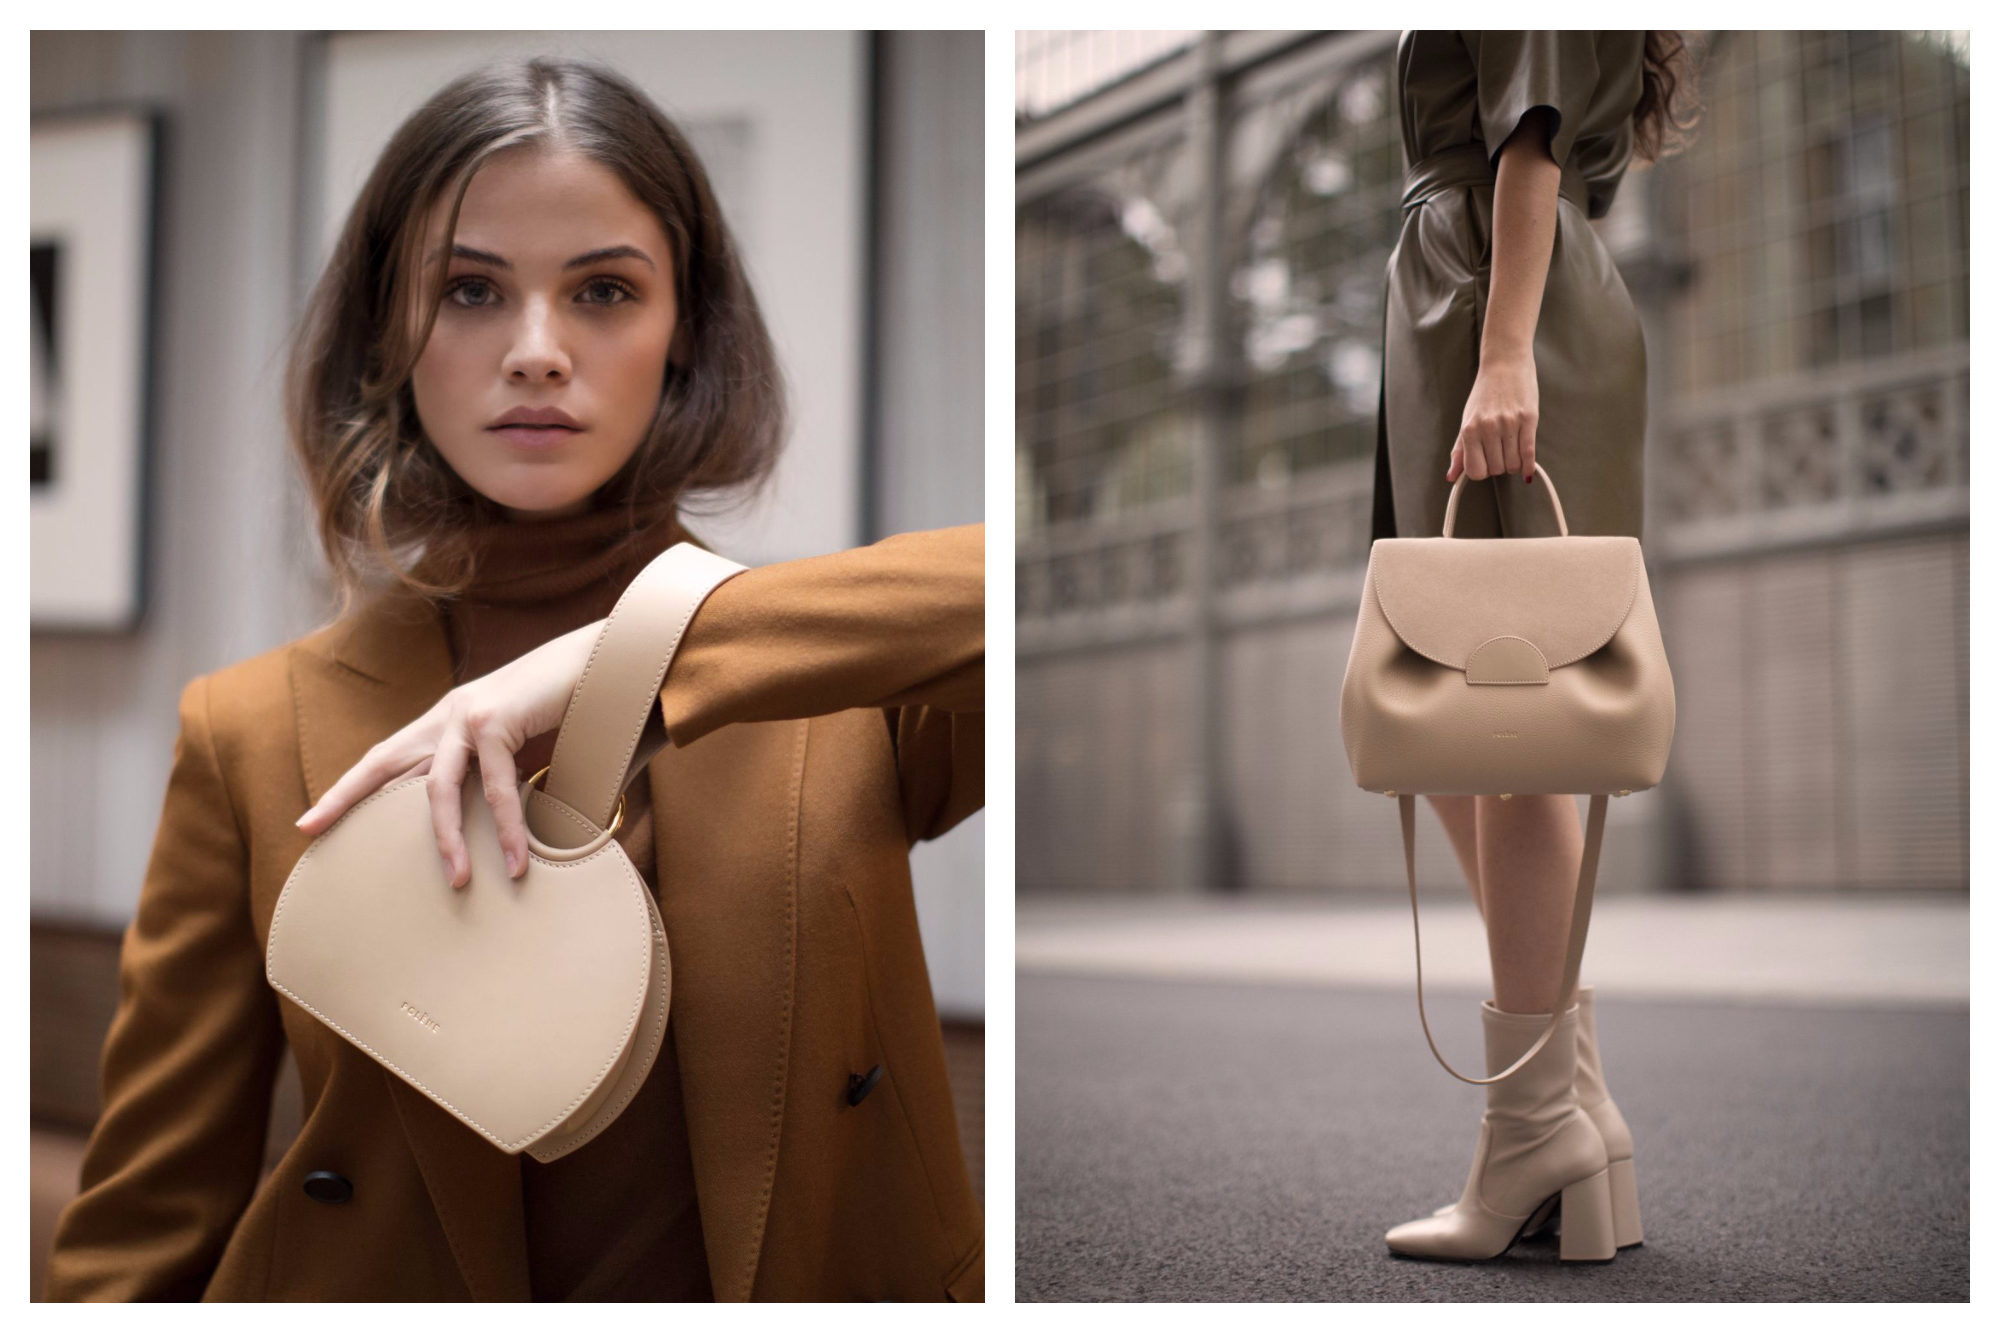 Parisian fashion style is all about the right bag, and the go-to brand for parisiennes is Polène. Its bags come in black and lighter colors, as featured here.